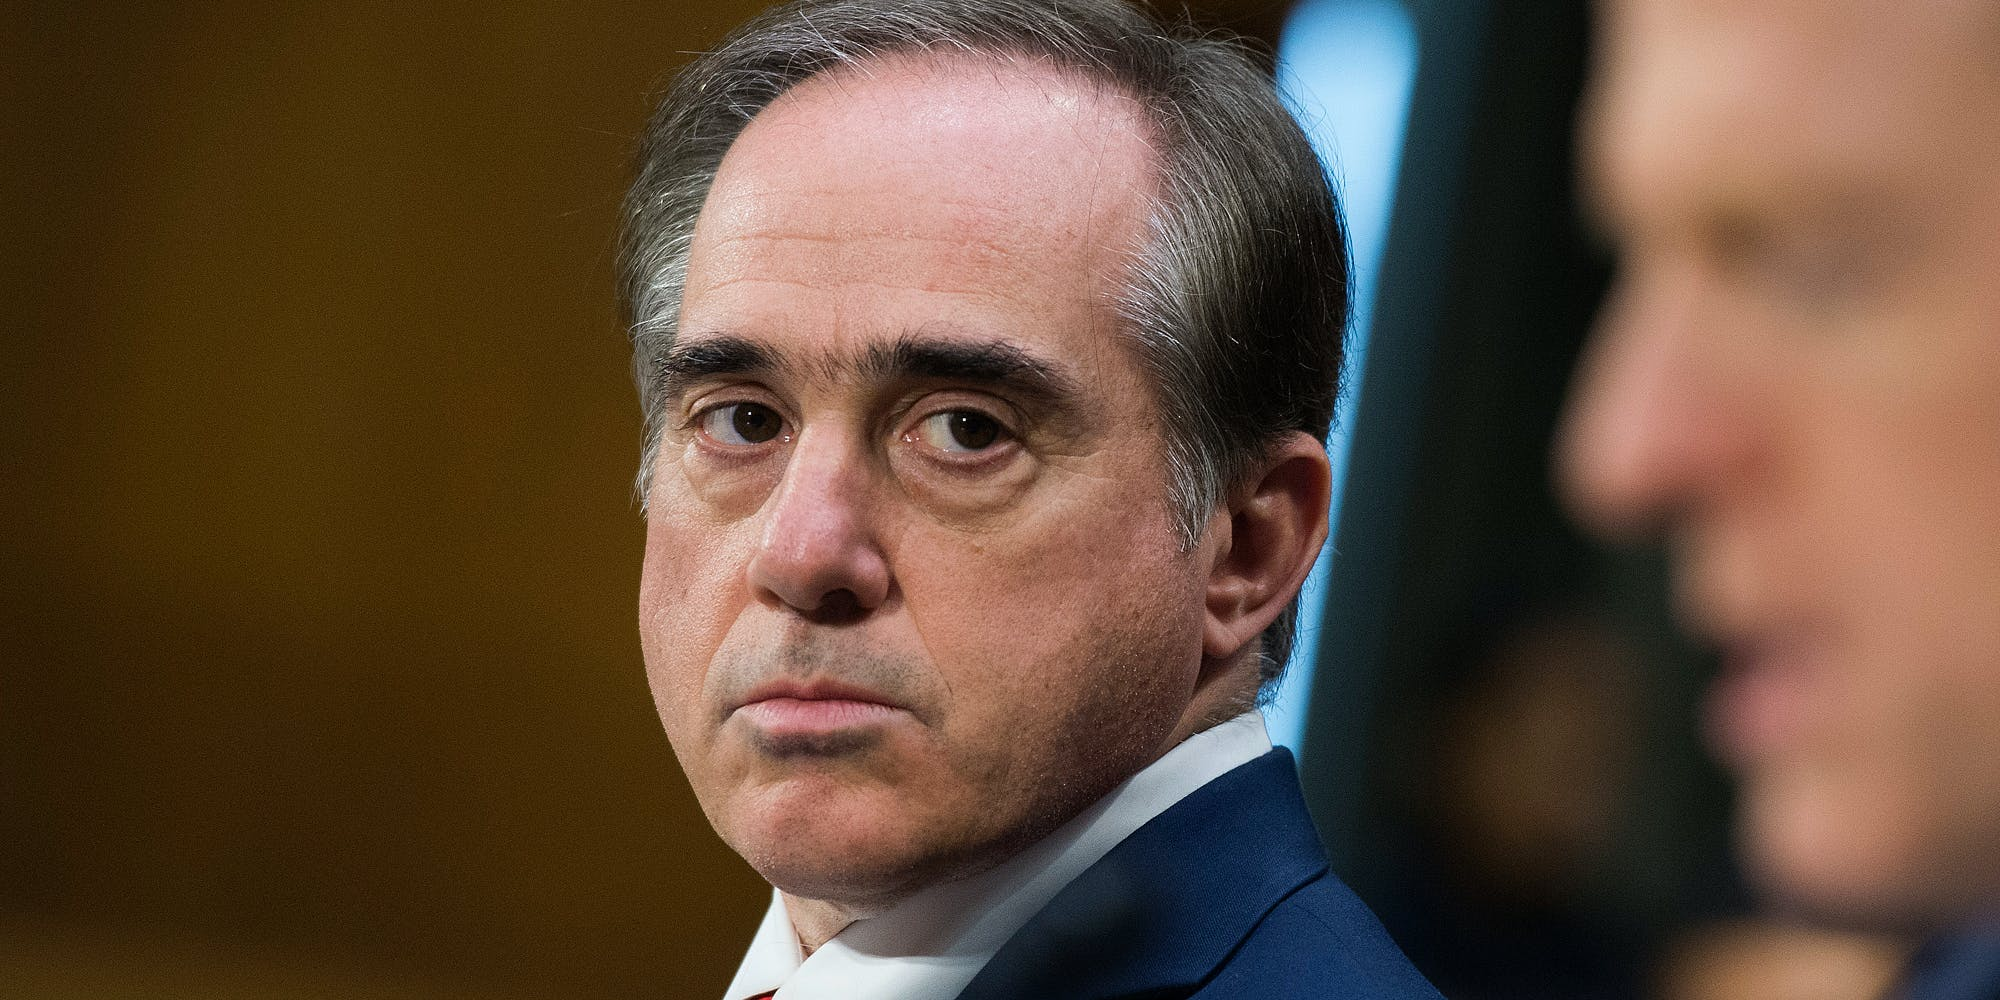 Will The VA's Attitudes Toward Marijuana Change If Secretary Shulkin Gets Fired?